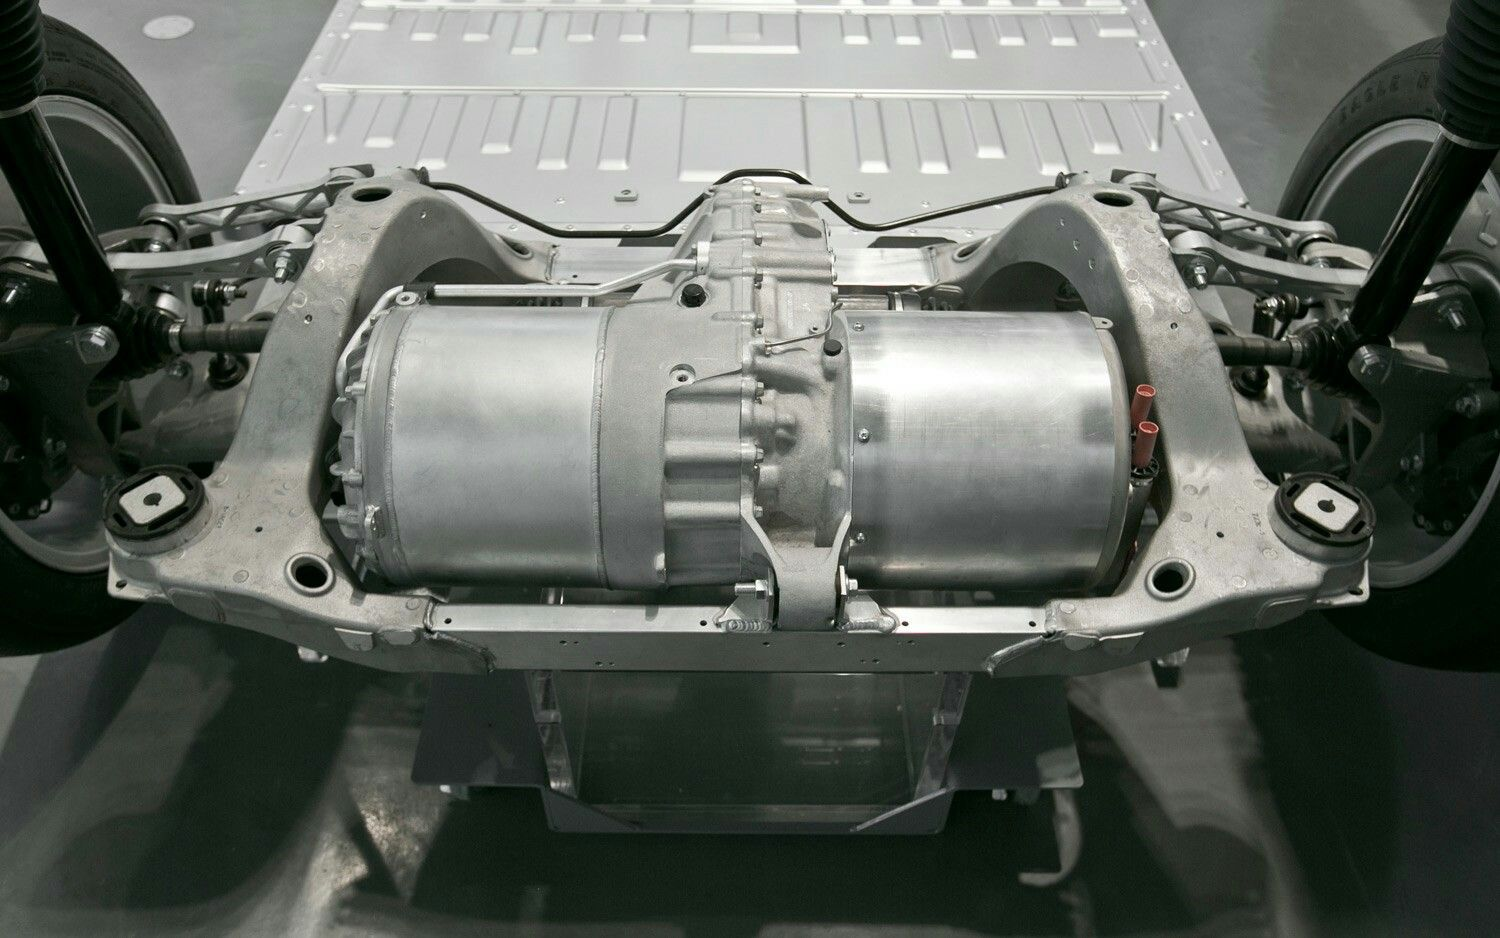 Pin By Patrick Rhoades On Electric F1 Road Legal Pinterest Tesla Engine Diagram Has Brought More Automaker Start Ups To The Marketplace Than Weve Seen In Decades With Fisker Automotive And Motors Most Prominent Examples